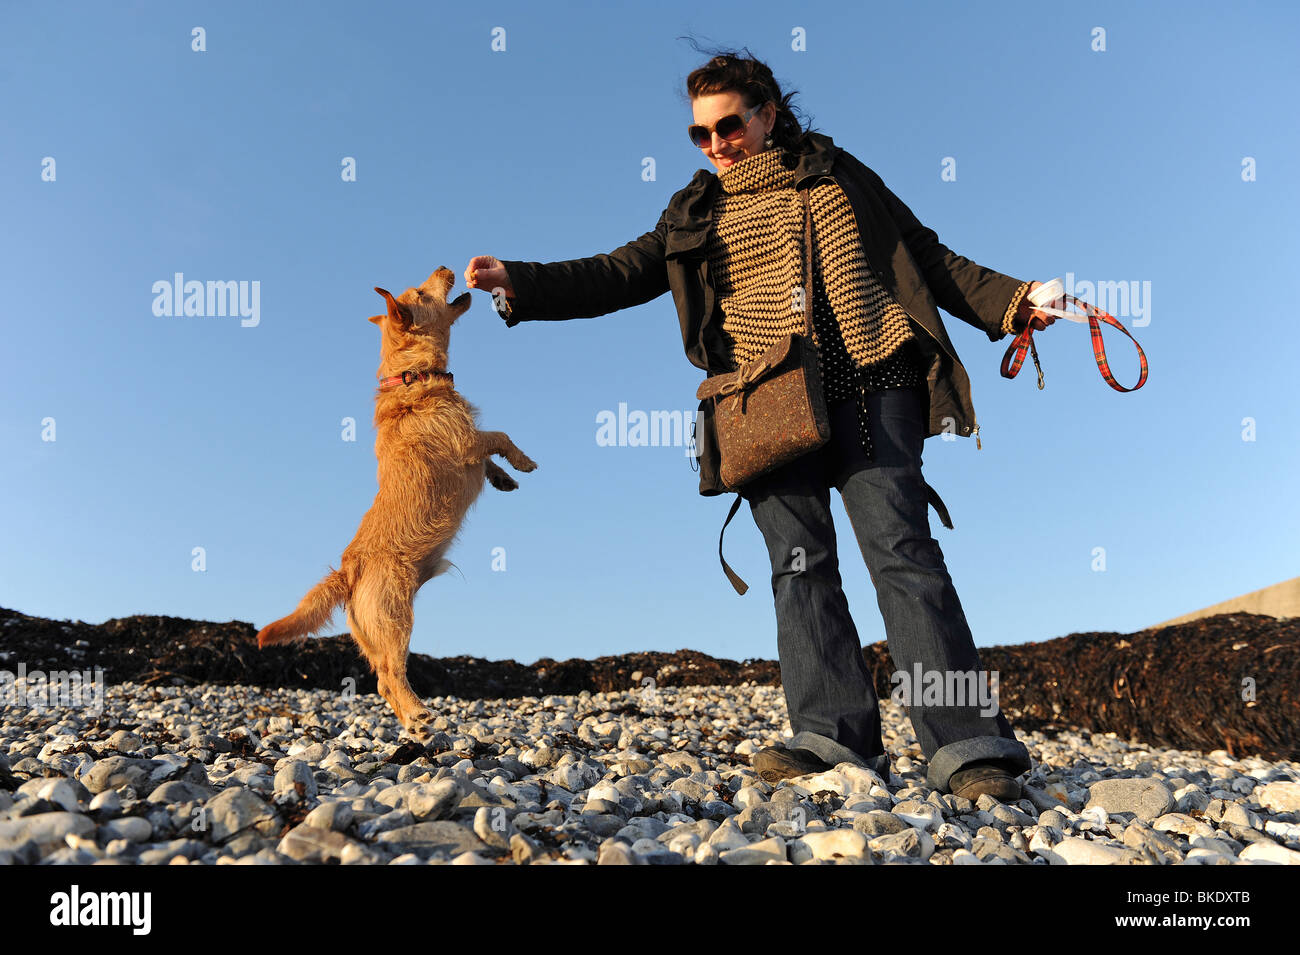 A woman with her Terrier Dog on a stony beach. - Stock Image